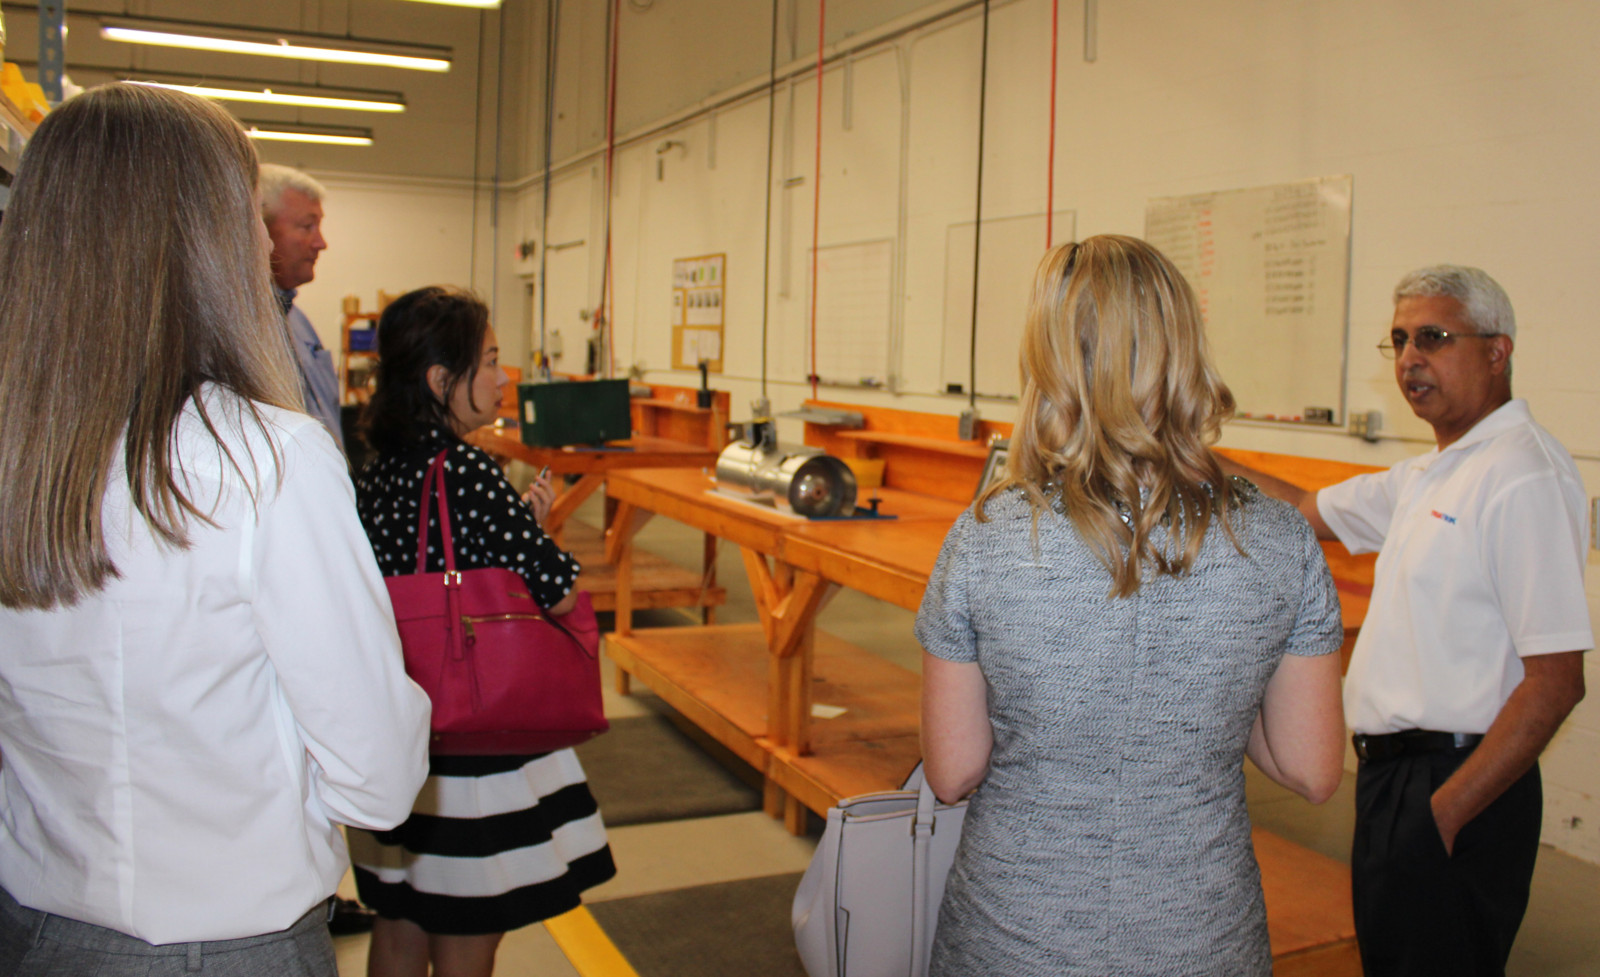 Prashant gives a tour of the Triatek facilities to members of the GaMEP and the Chamber of Commerce